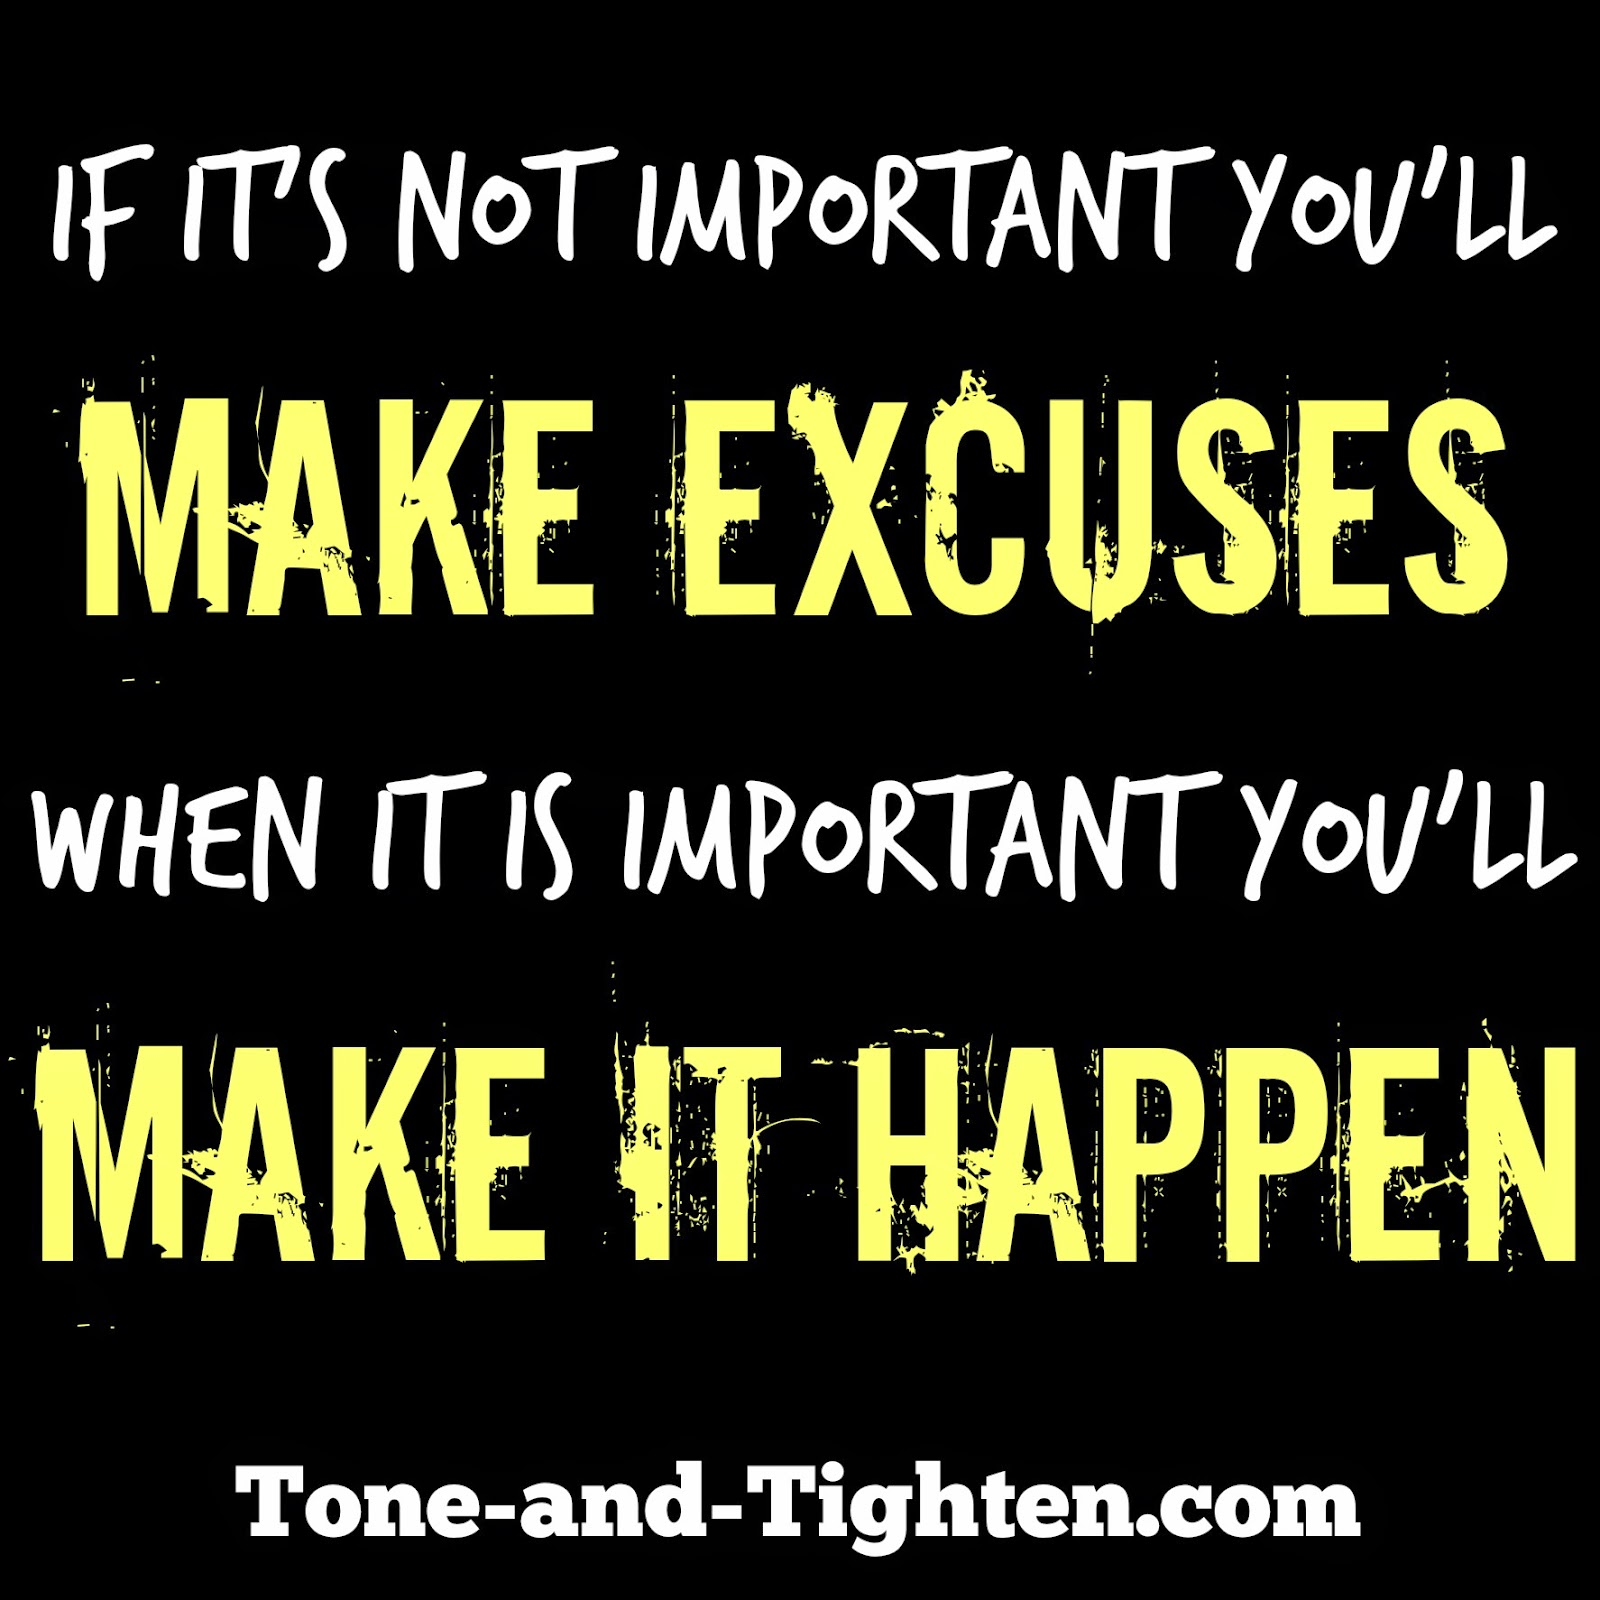 https://tone-and-tighten.com/2014/06/fitness-motivation-exercise-inspiration-what-are-your-priorities.html